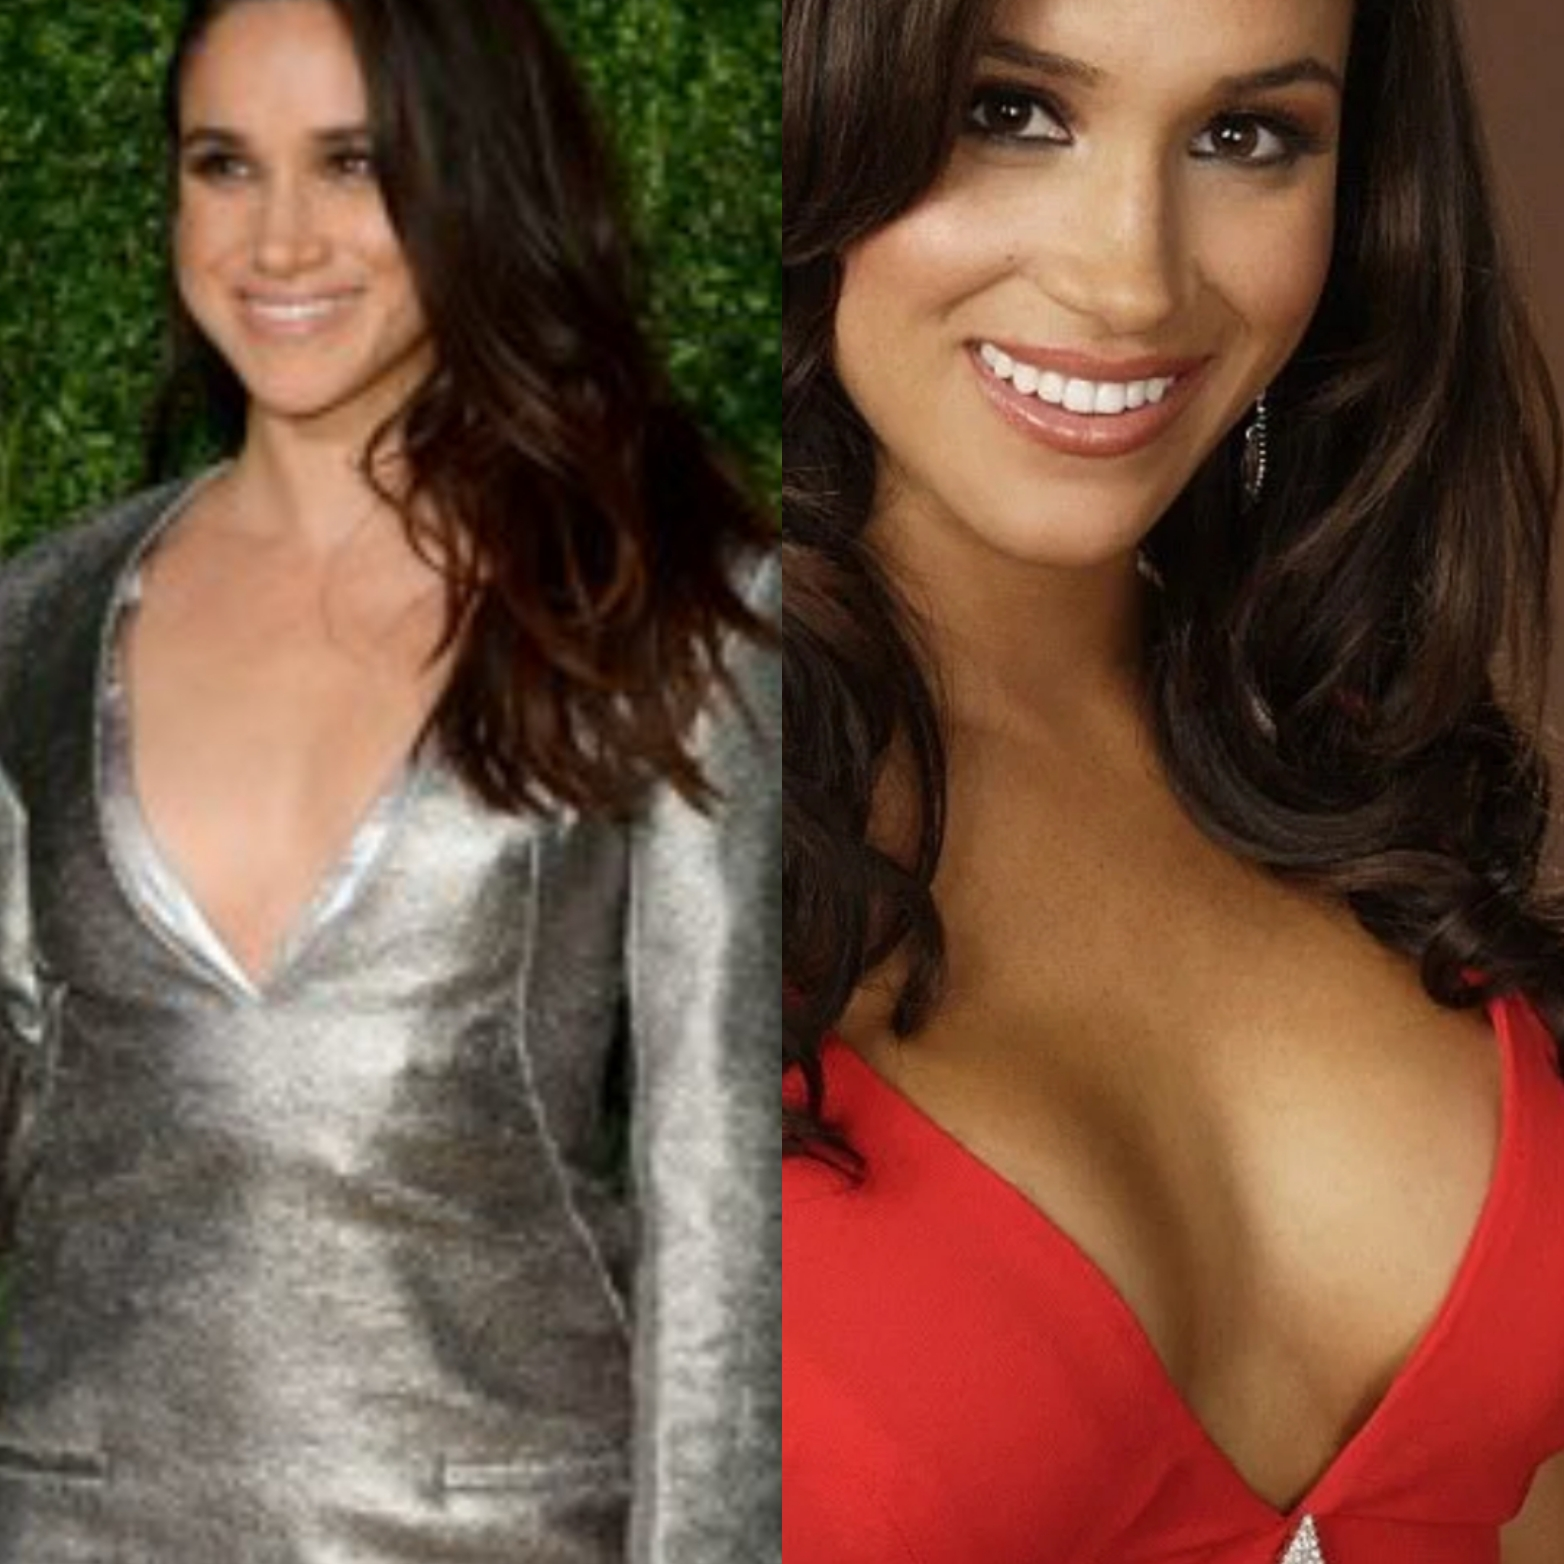 Meghan Markle before and after breast augmentation